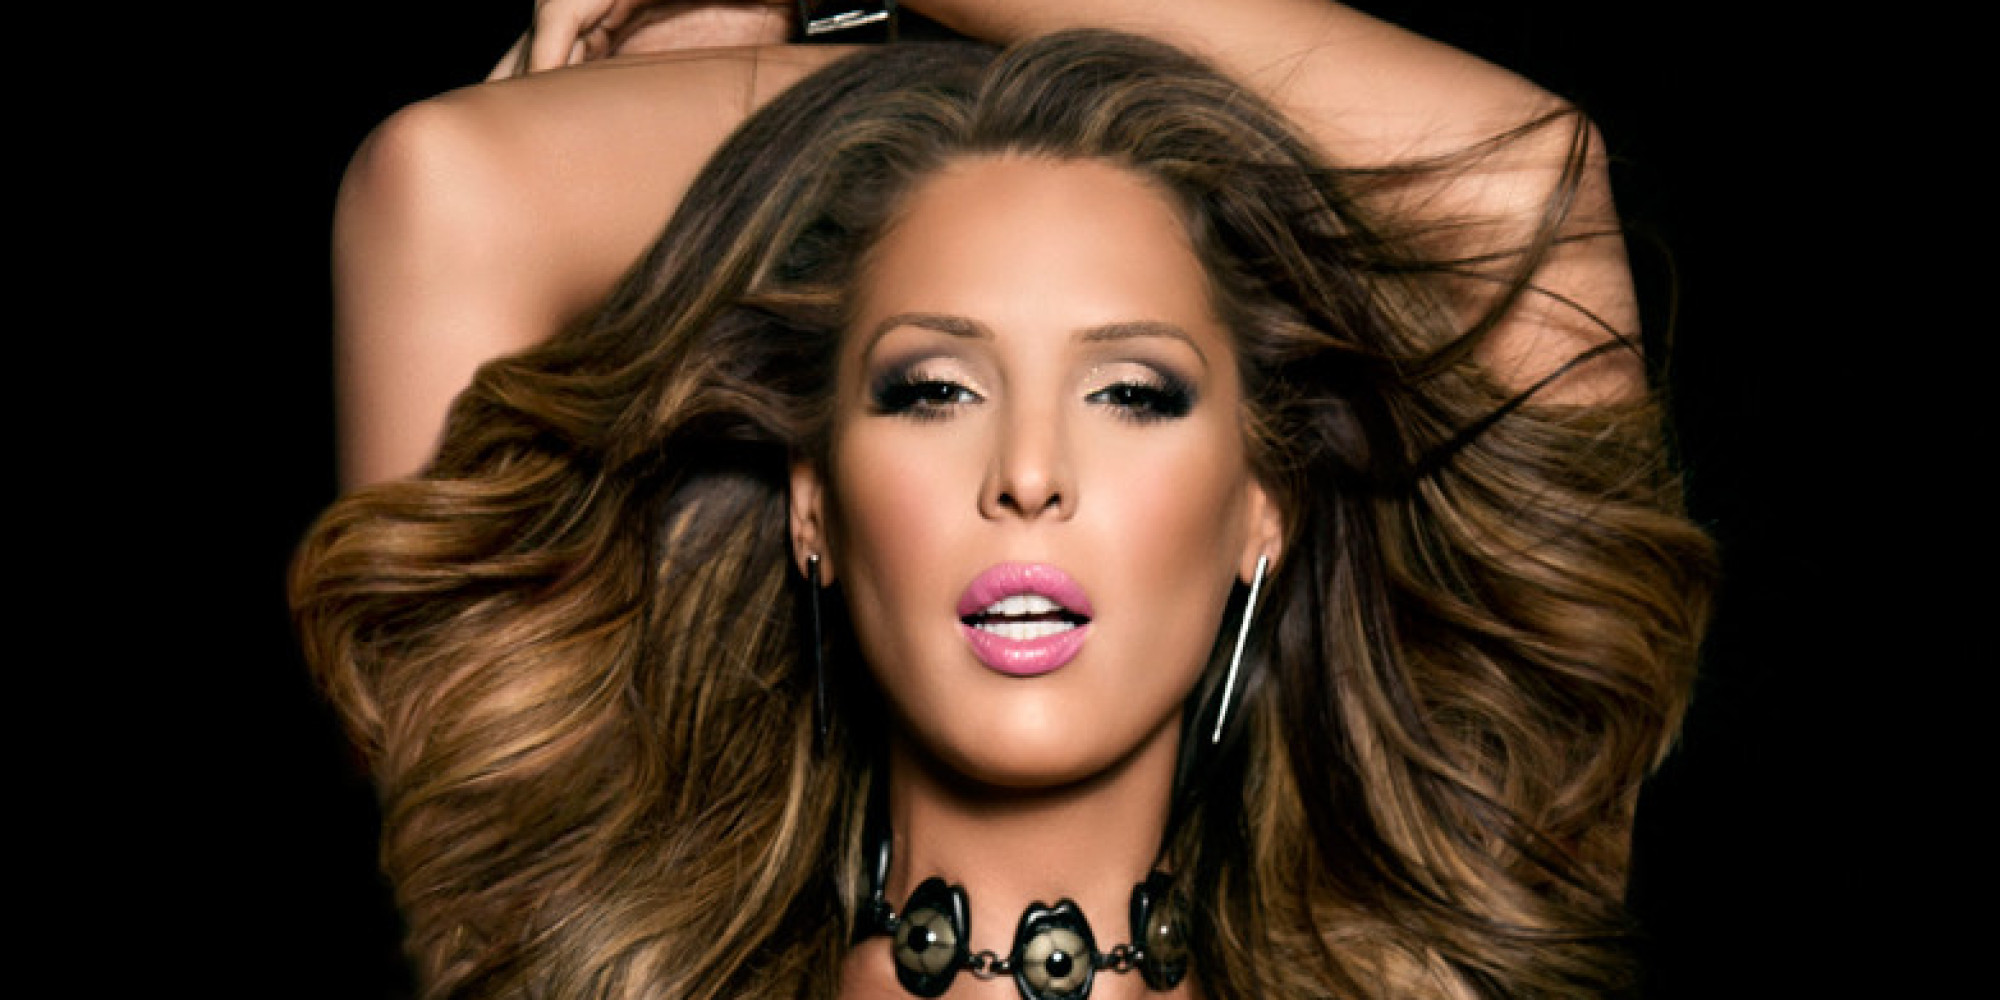 Carmen Carrera Stuns In Mike Ruiz Photo Shoot